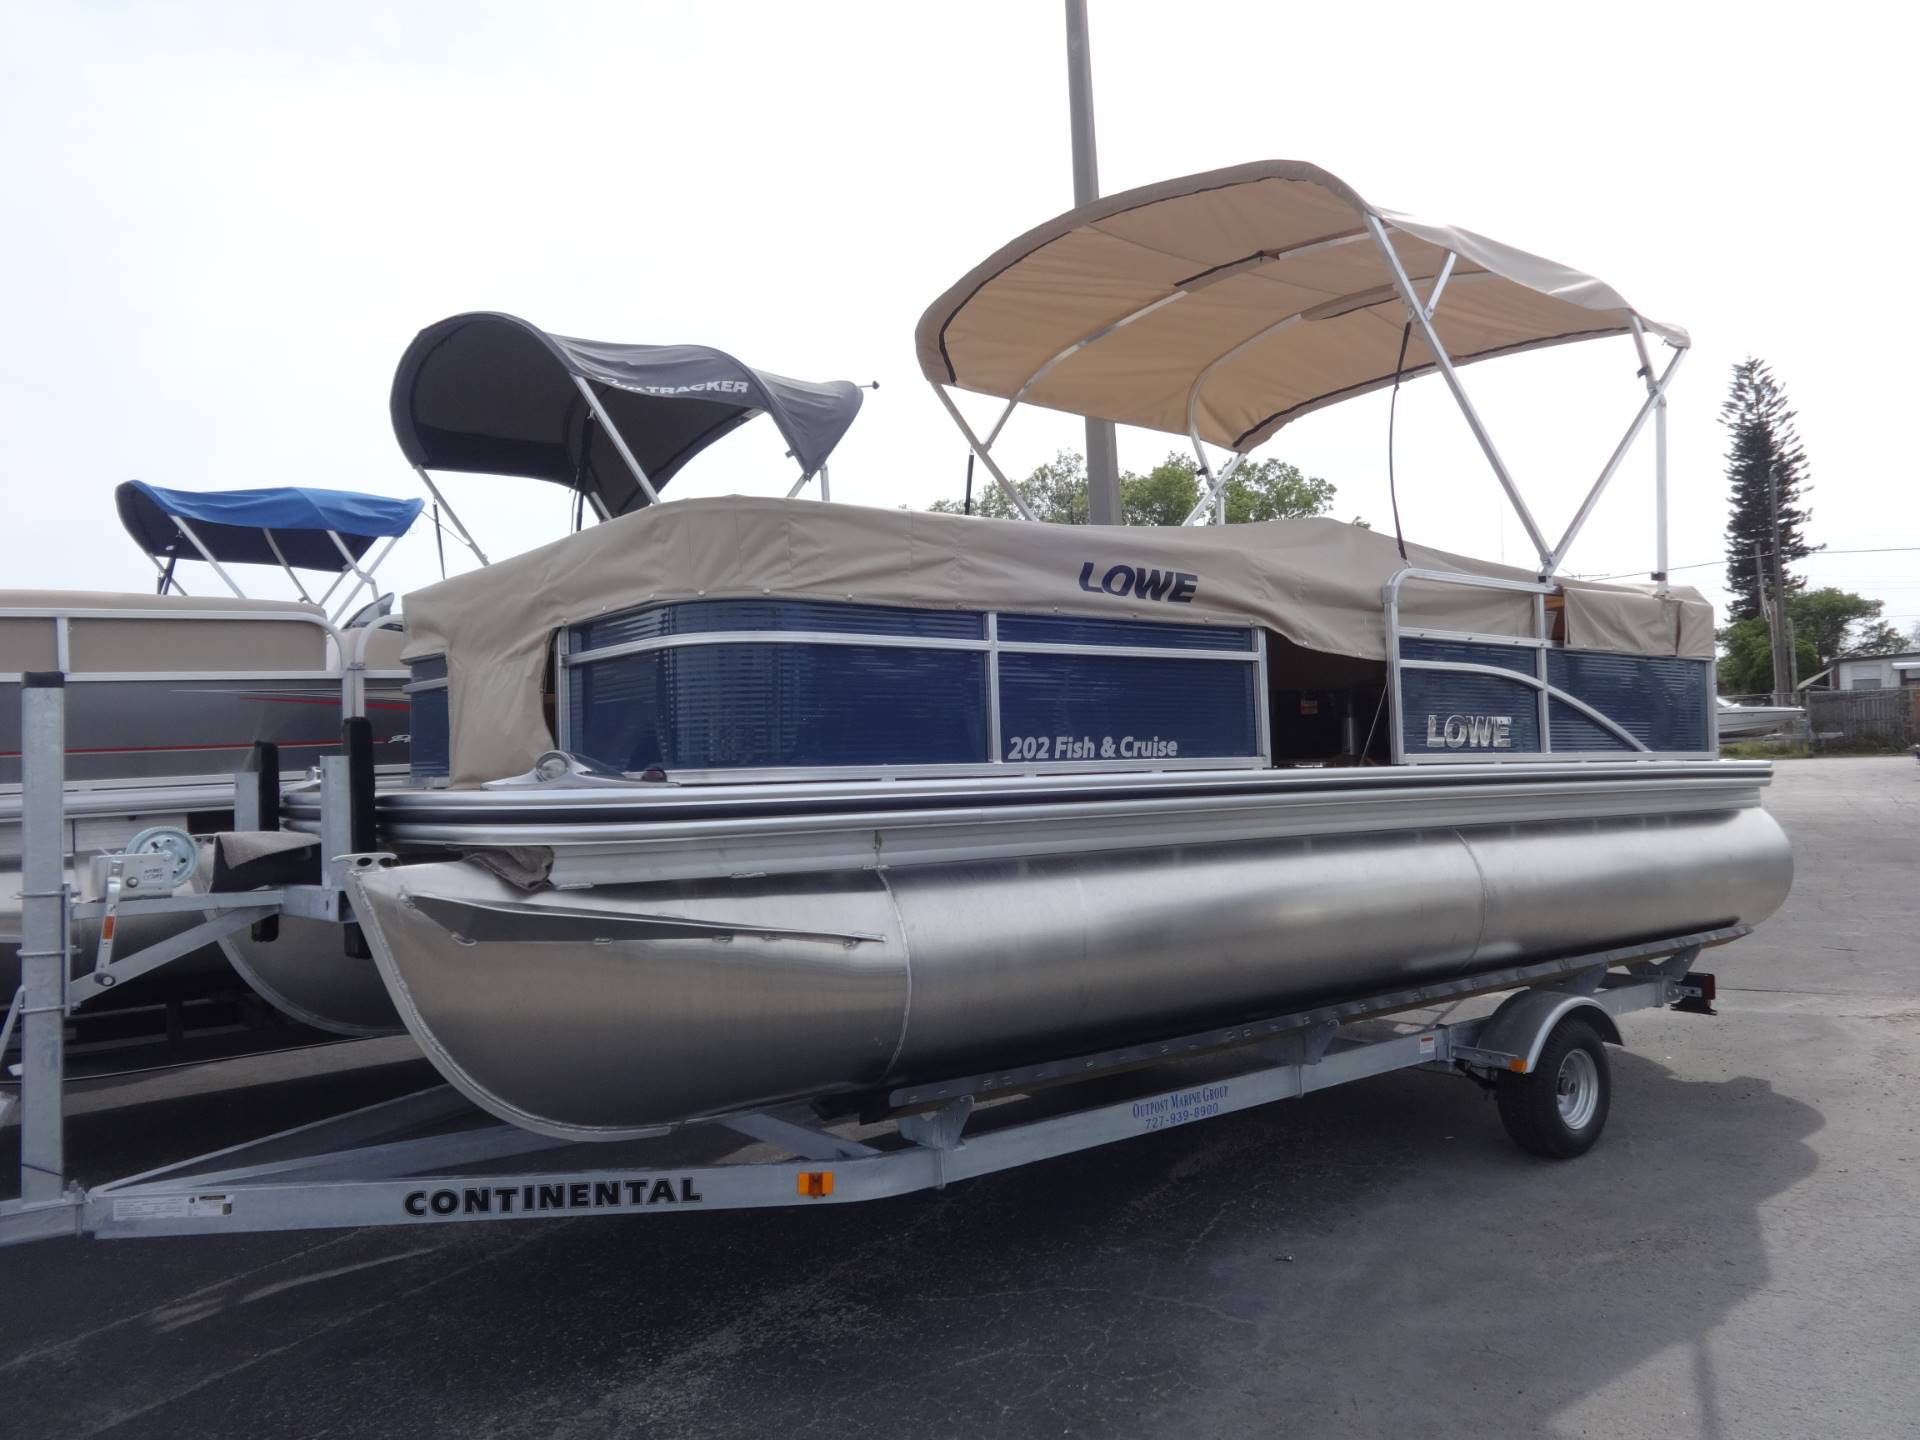 Lowe ULTRA VALUE 202 FISH & CRUISE